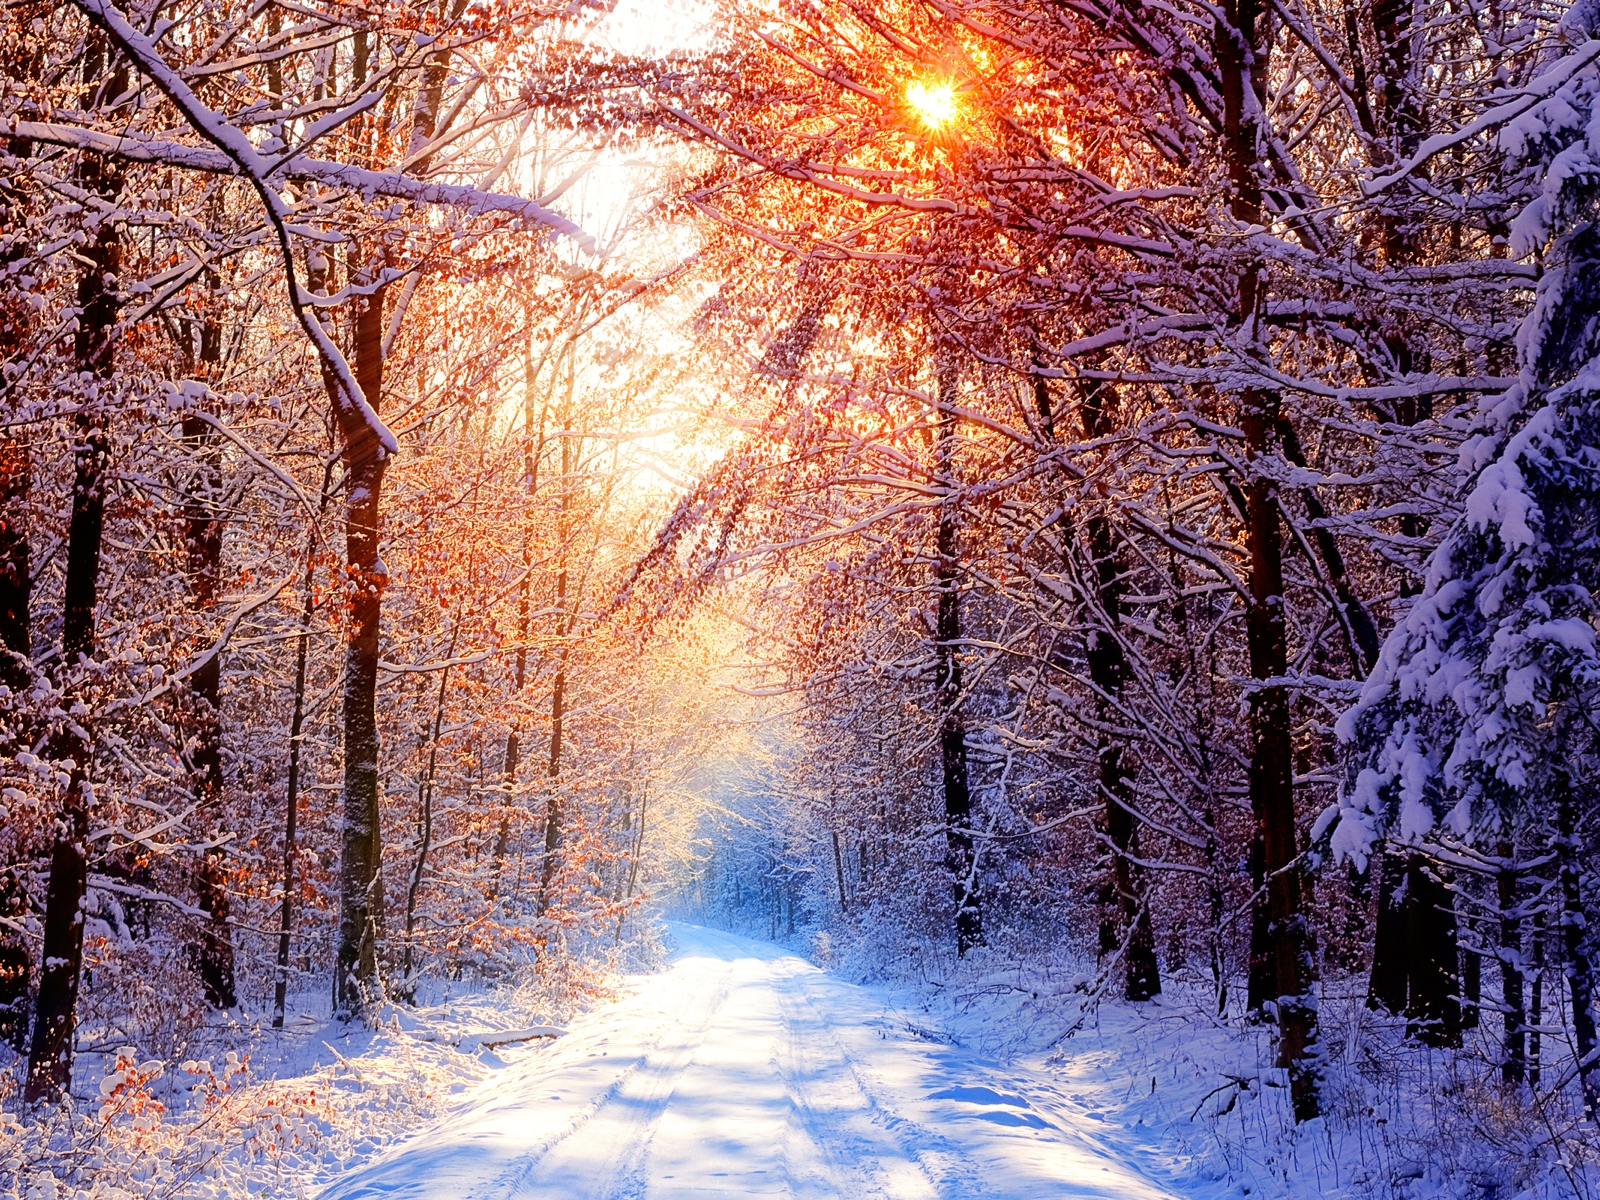 Wallpapers HD Winter:Computer Wallpaper | Free Wallpaper ...